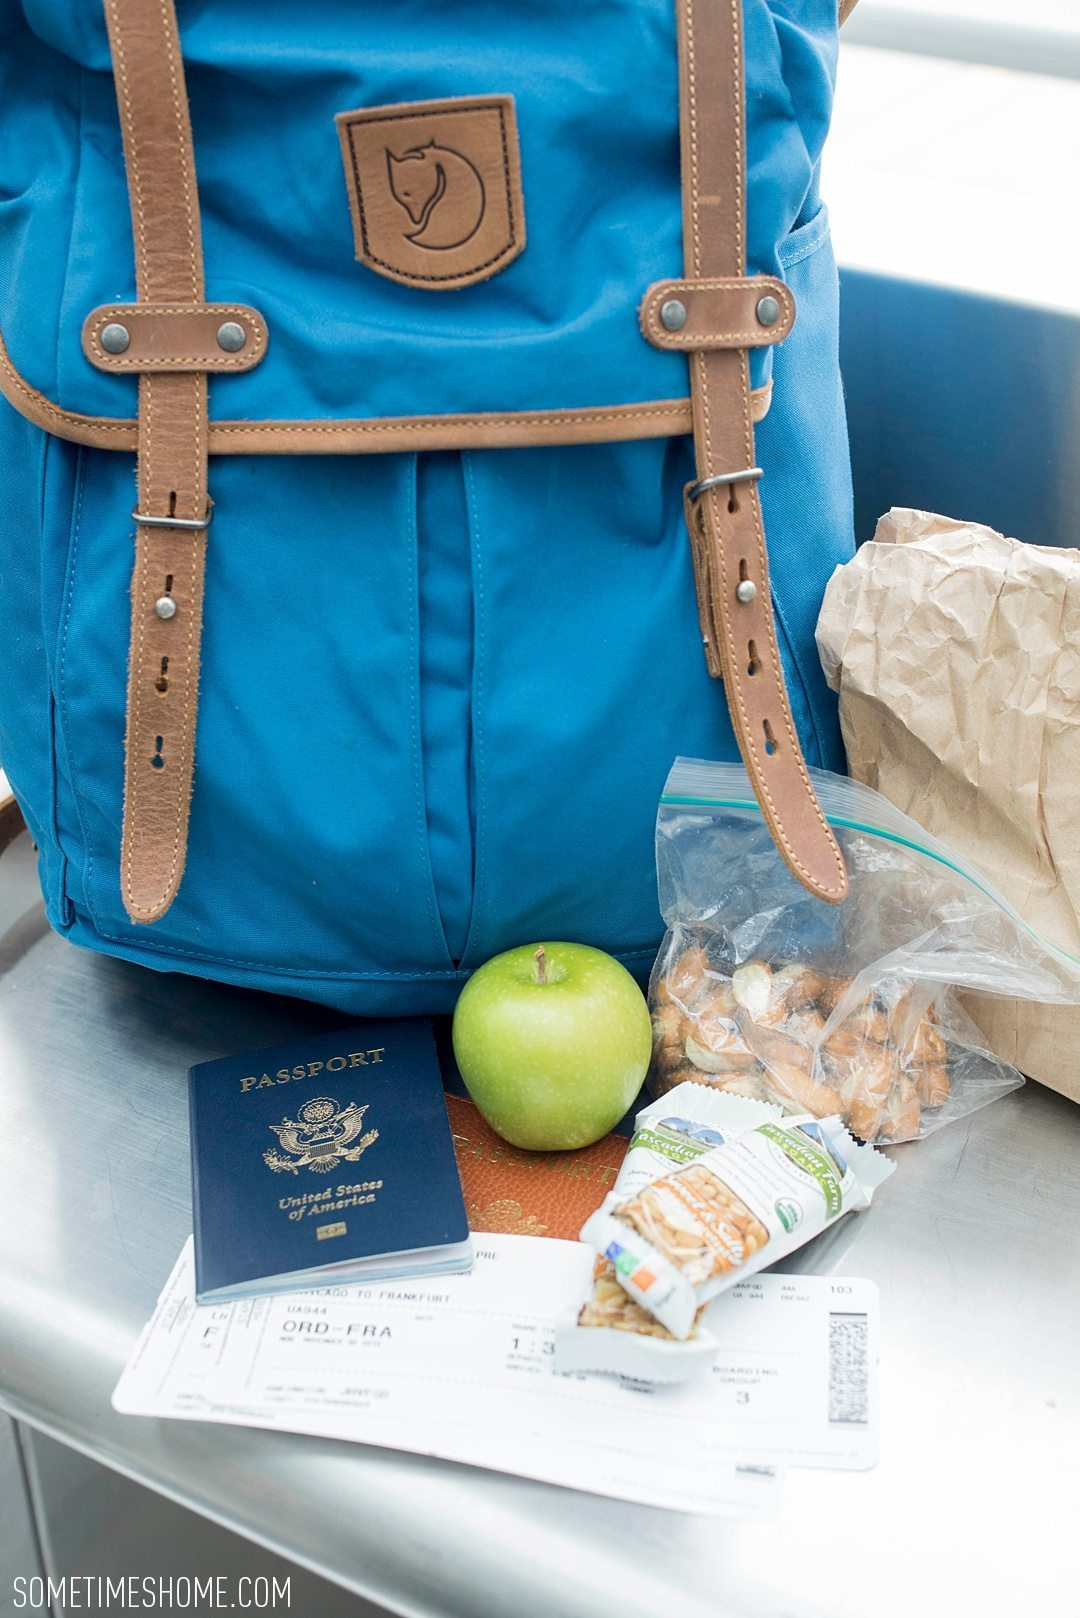 Top 10 Travel Tips Abroad blog post with what to pack in a carry on by Sometimes Home blog, by Mikkel Paige. Approachable advice and info on international trips.